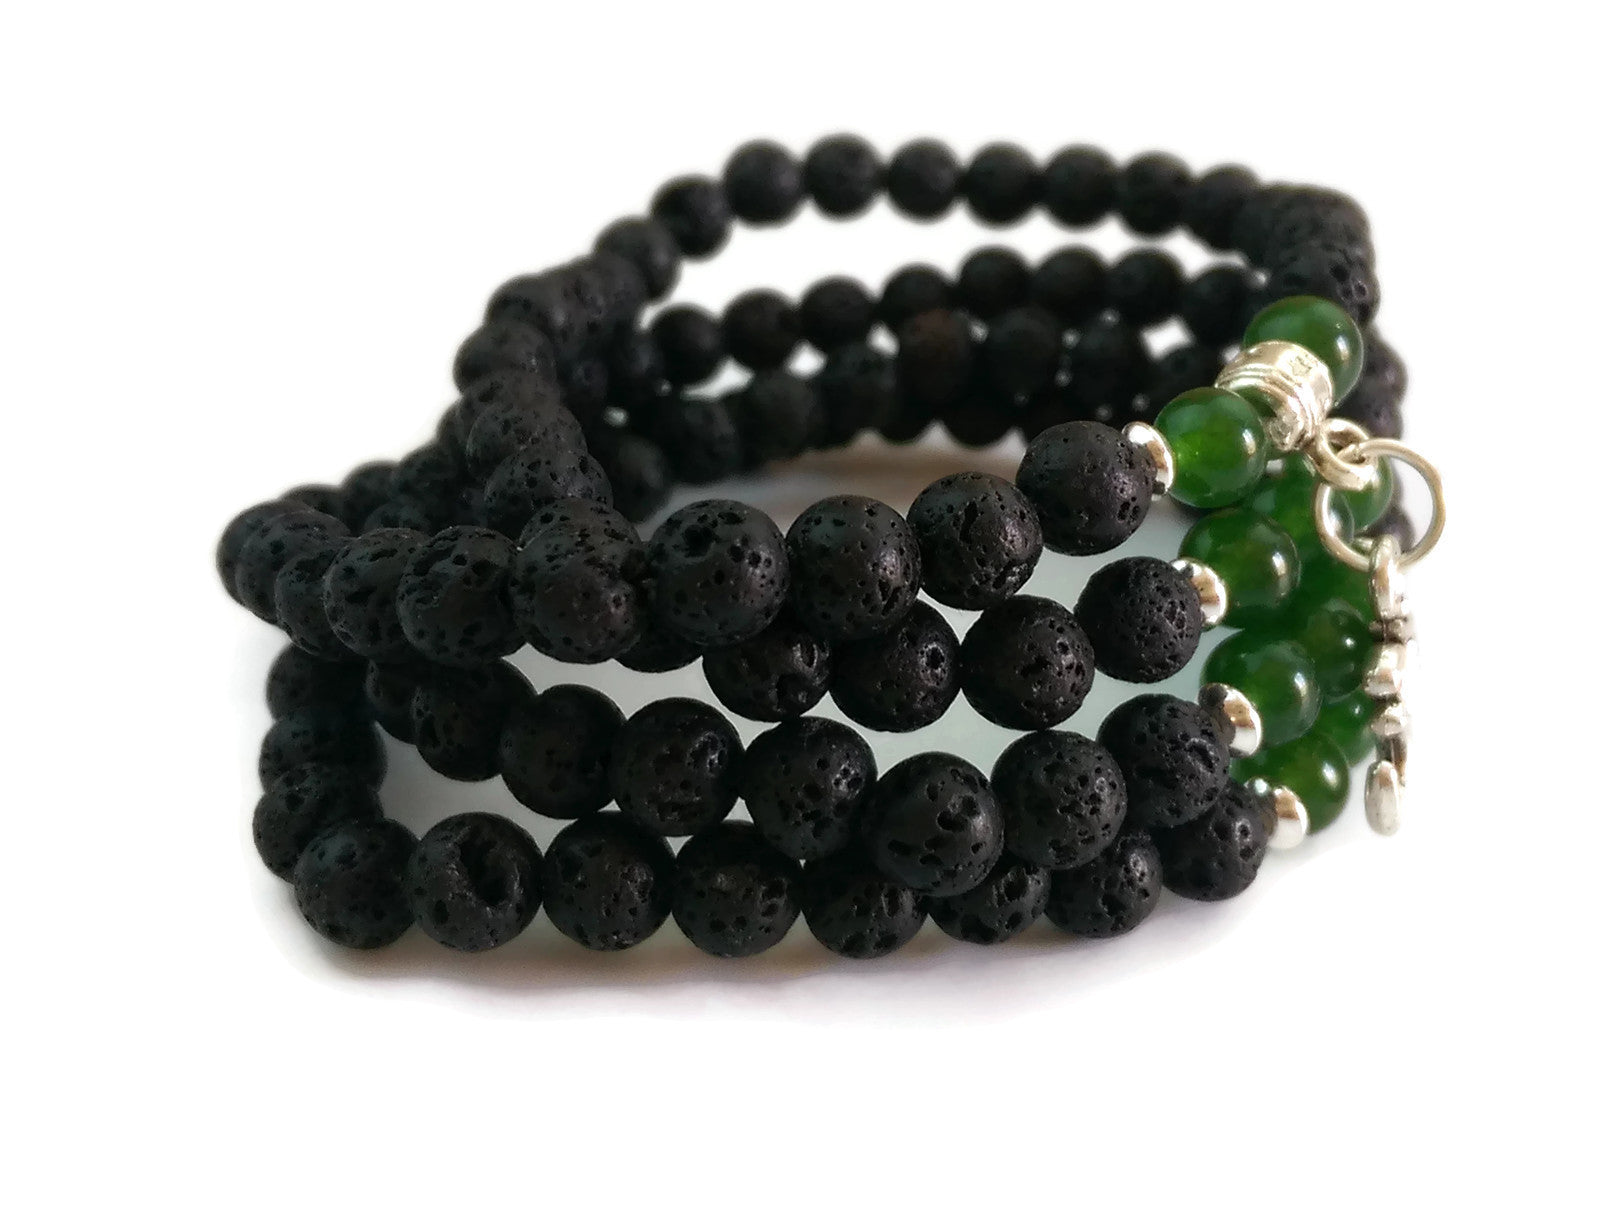 6mm Lava and Green Jade Stone with 925 Silver Wrist Wrap Mala Bracelet with Om Charm